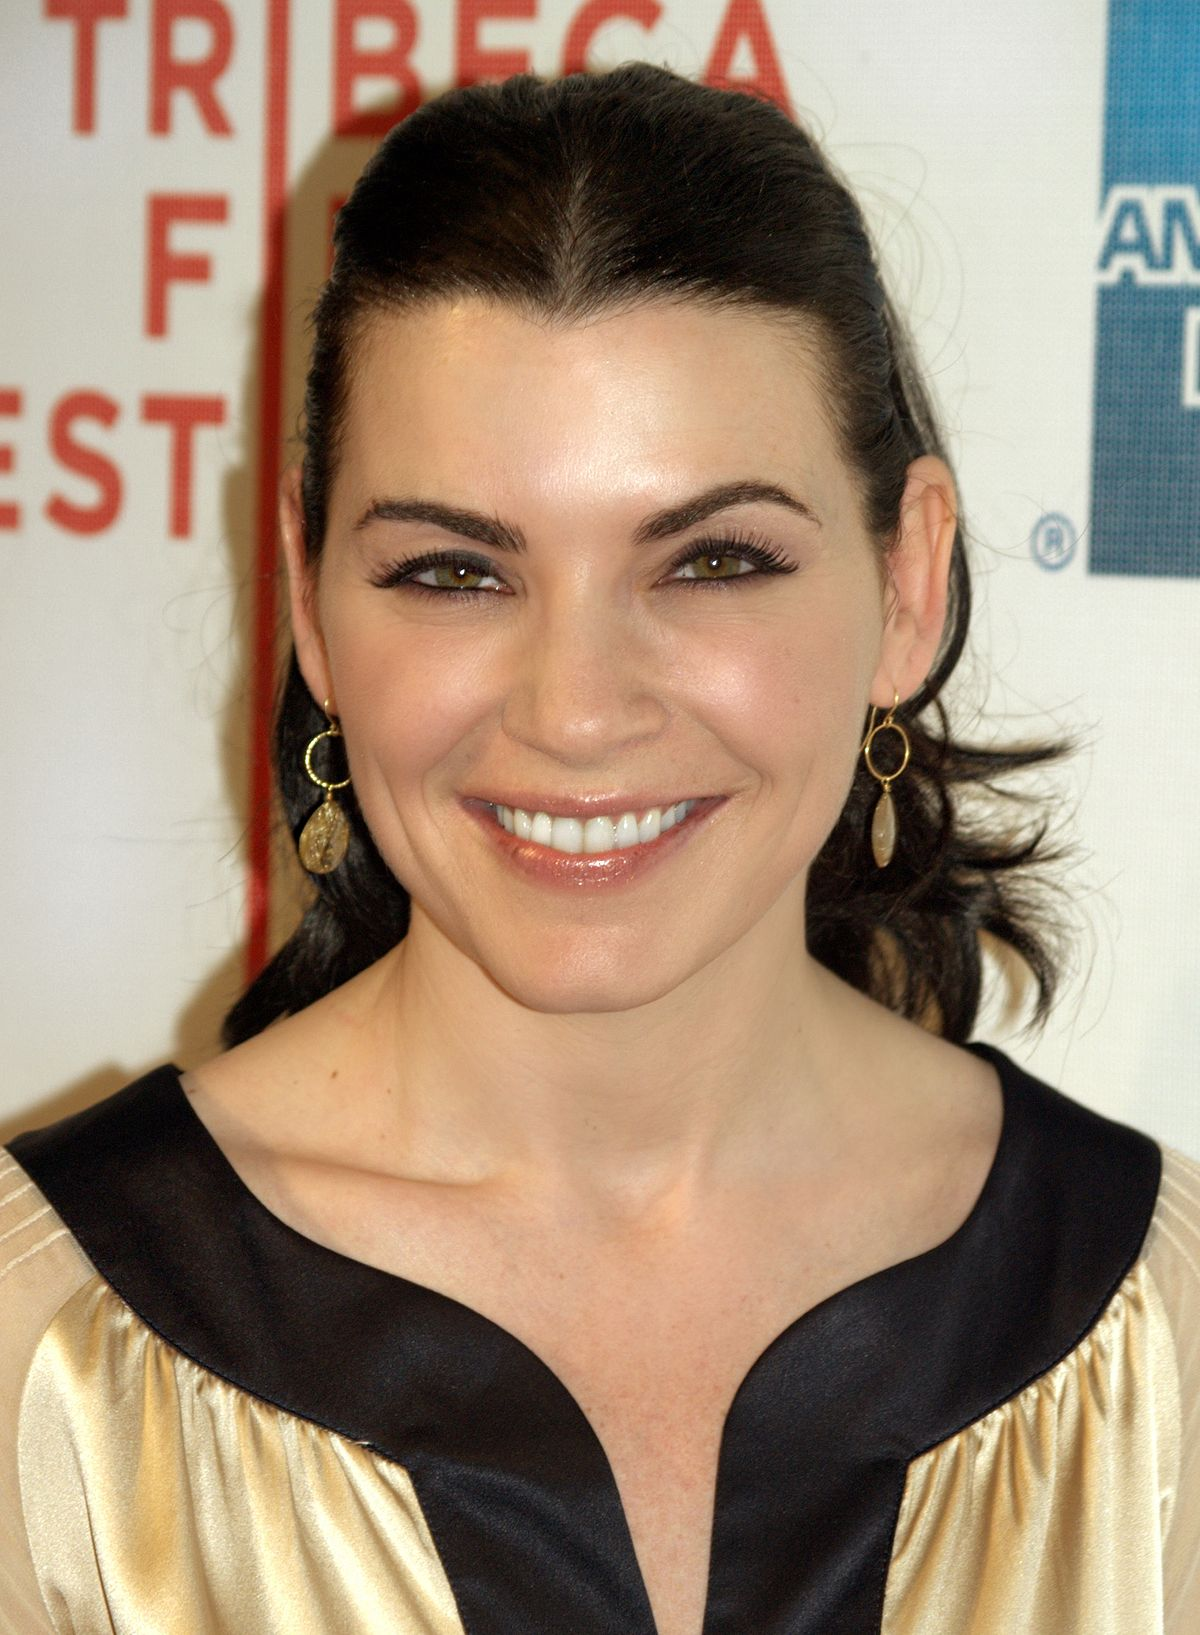 Julianna Margulies nudes (79 foto), pictures Topless, iCloud, braless 2018